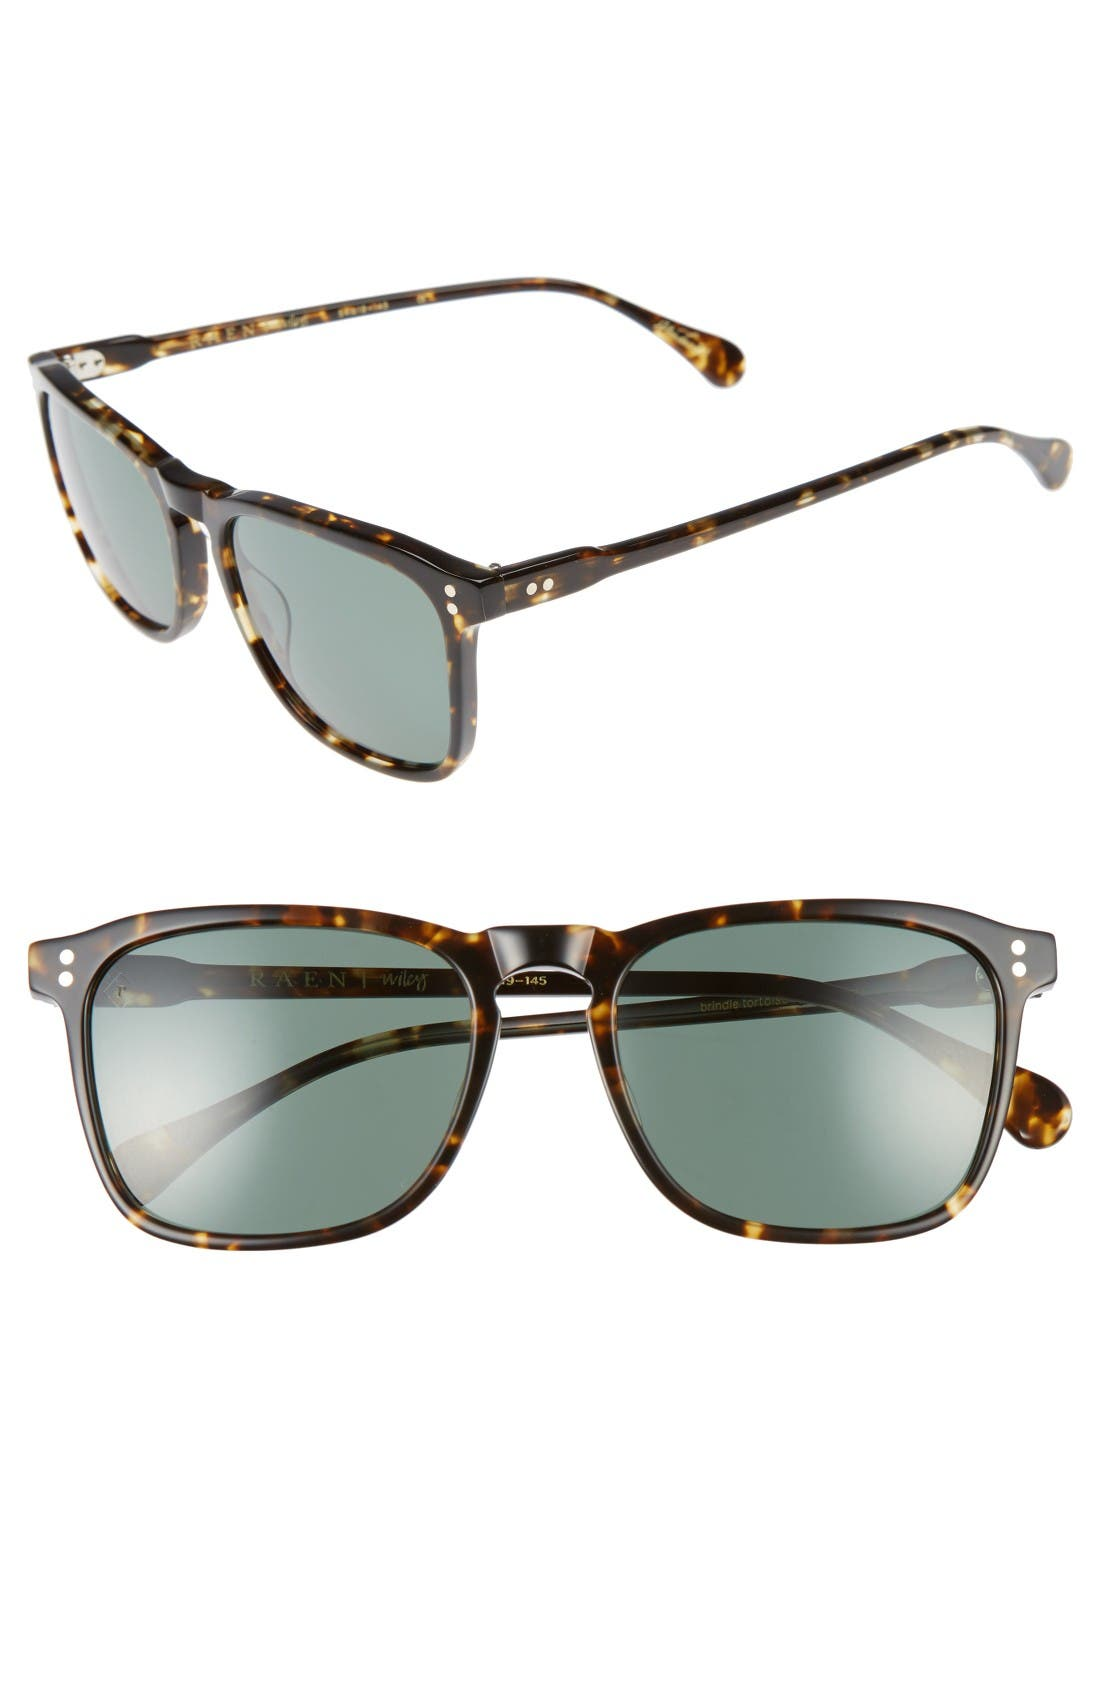 Wiley 54mm Sunglasses,                         Main,                         color, Brindle Tortoise